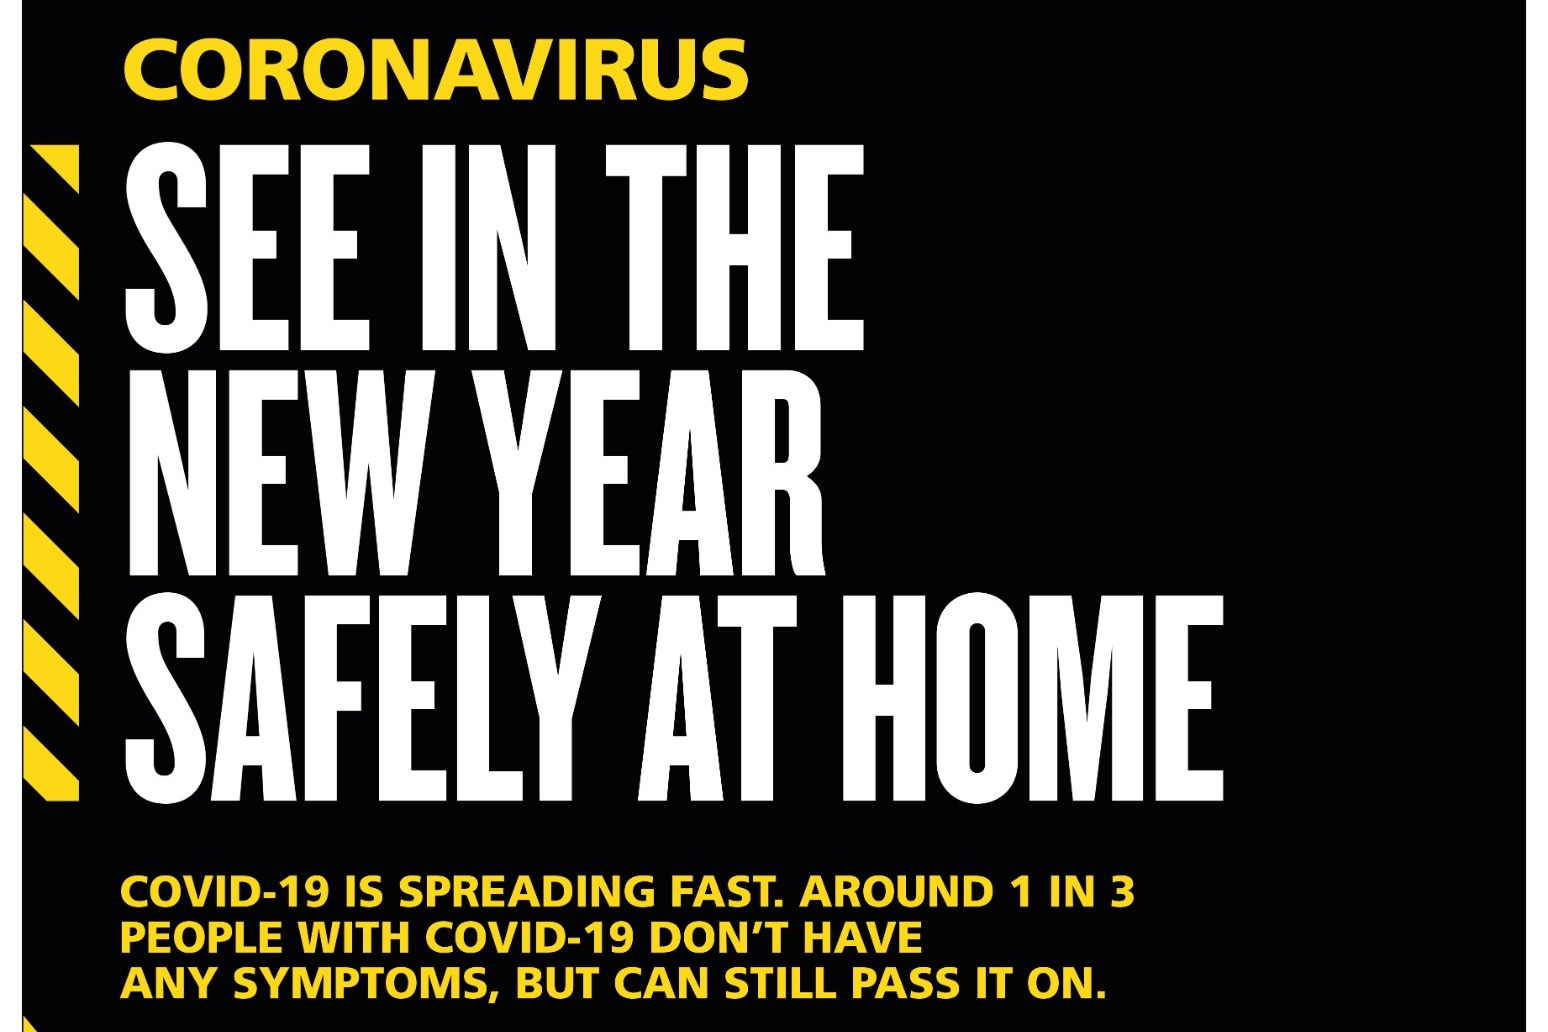 Act like you have virus and stay at home this New Year's Eve, public warned